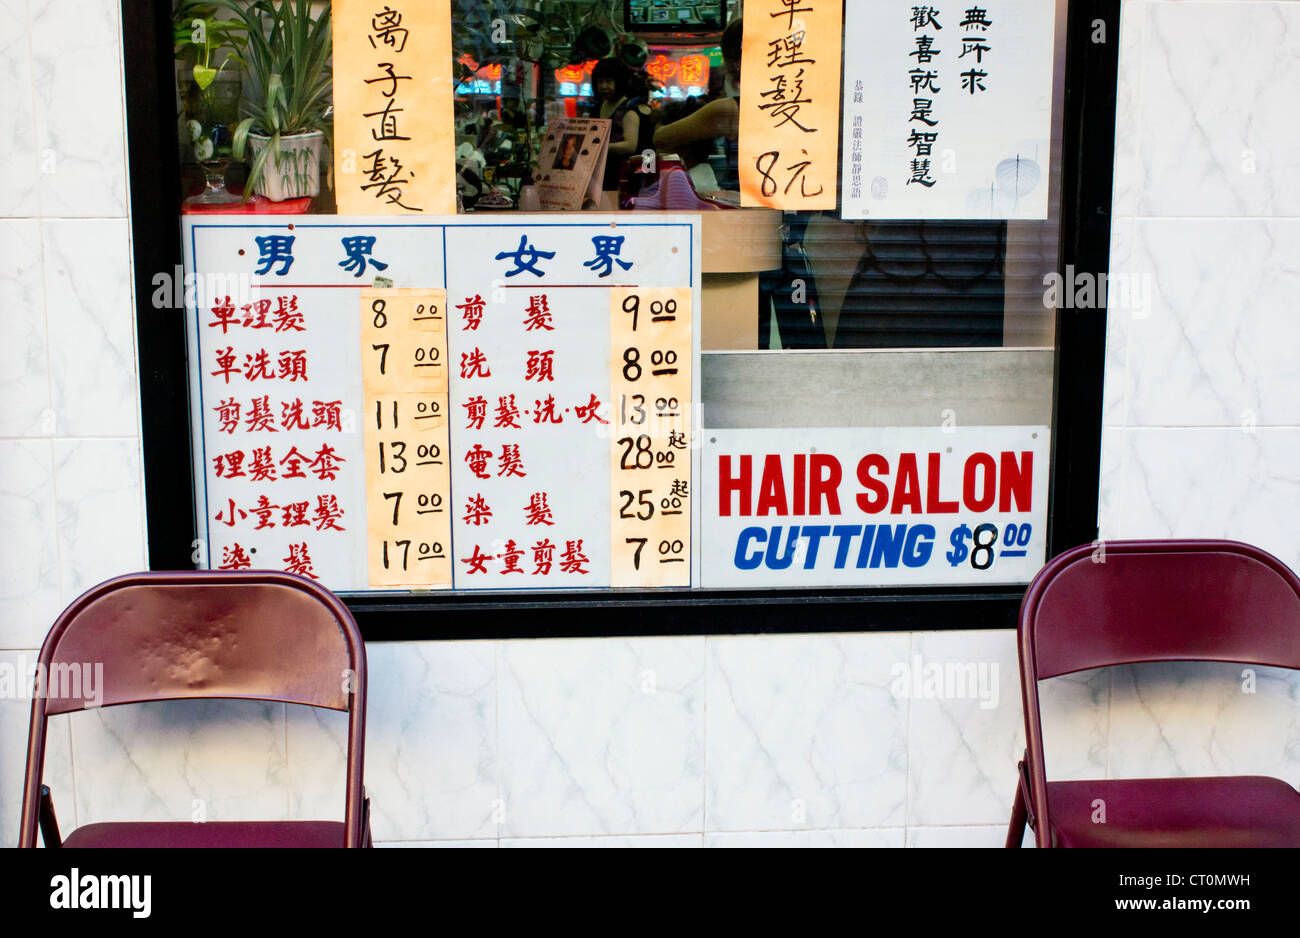 A Price List Of Services In The Window Of A Chinatown Hair Salon In New  York City